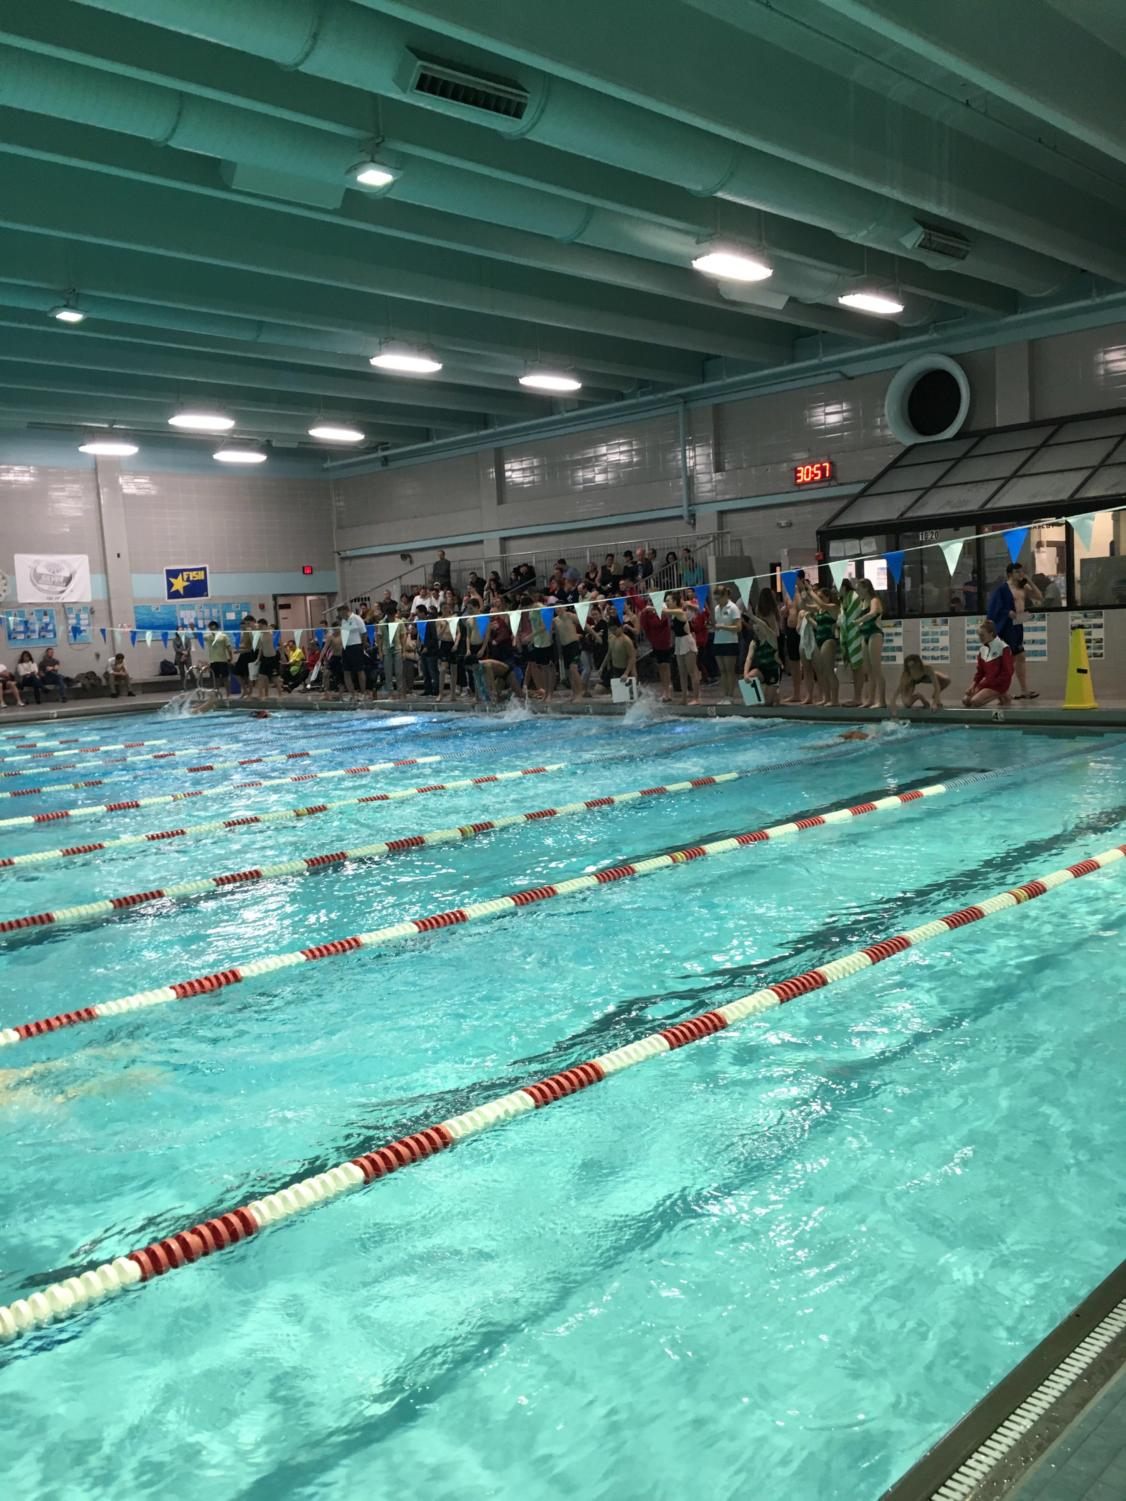 McLean swimmers jump in ready to complete warm-ups for the meet. Swimmers were excited to compete.